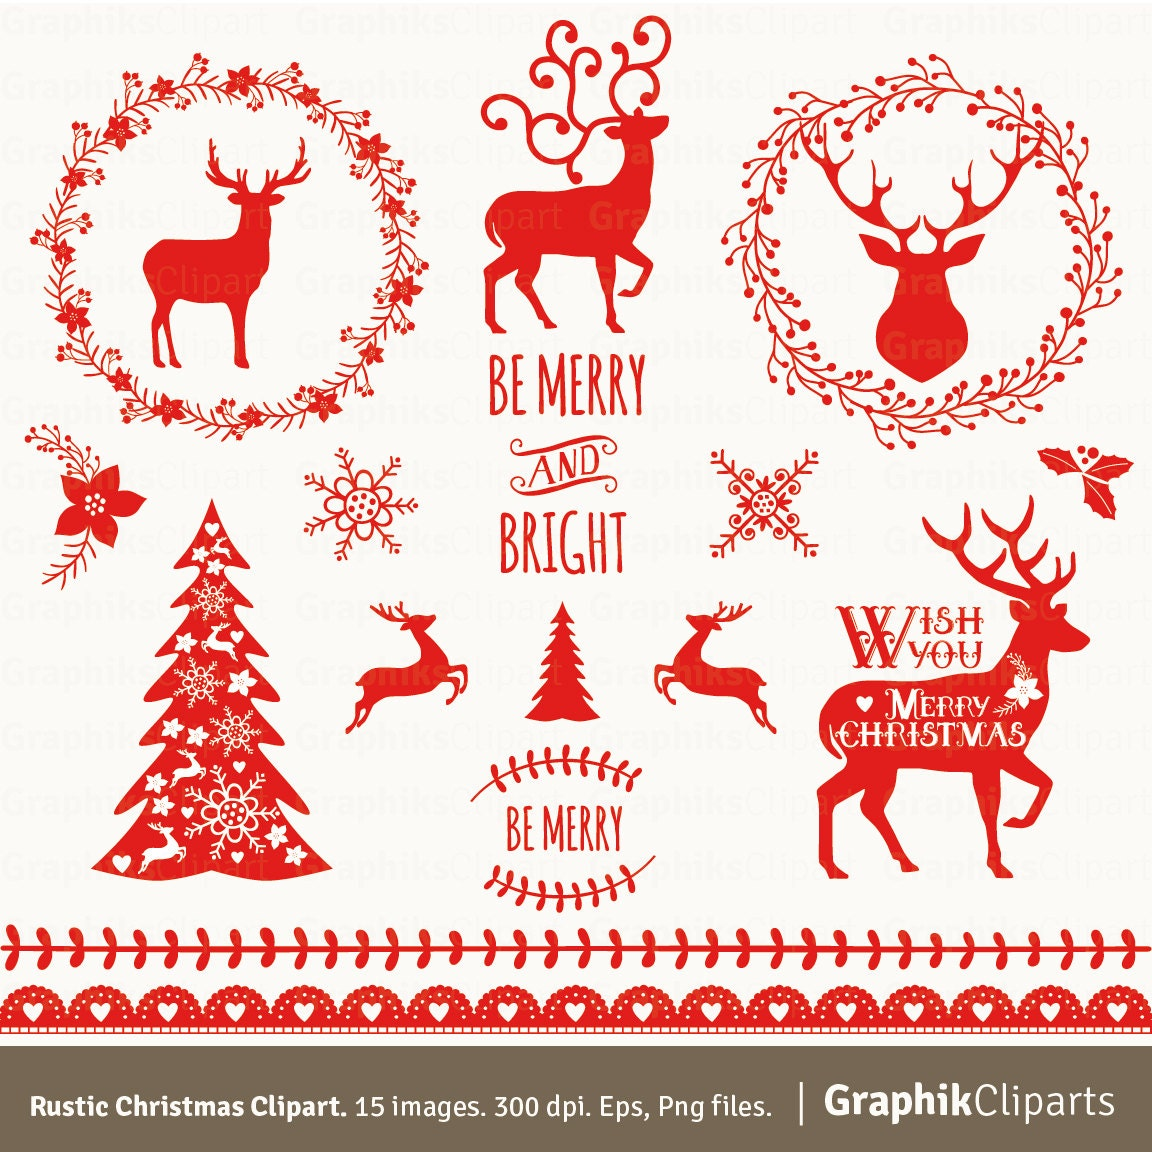 Rustic Christmas Clipart Vector